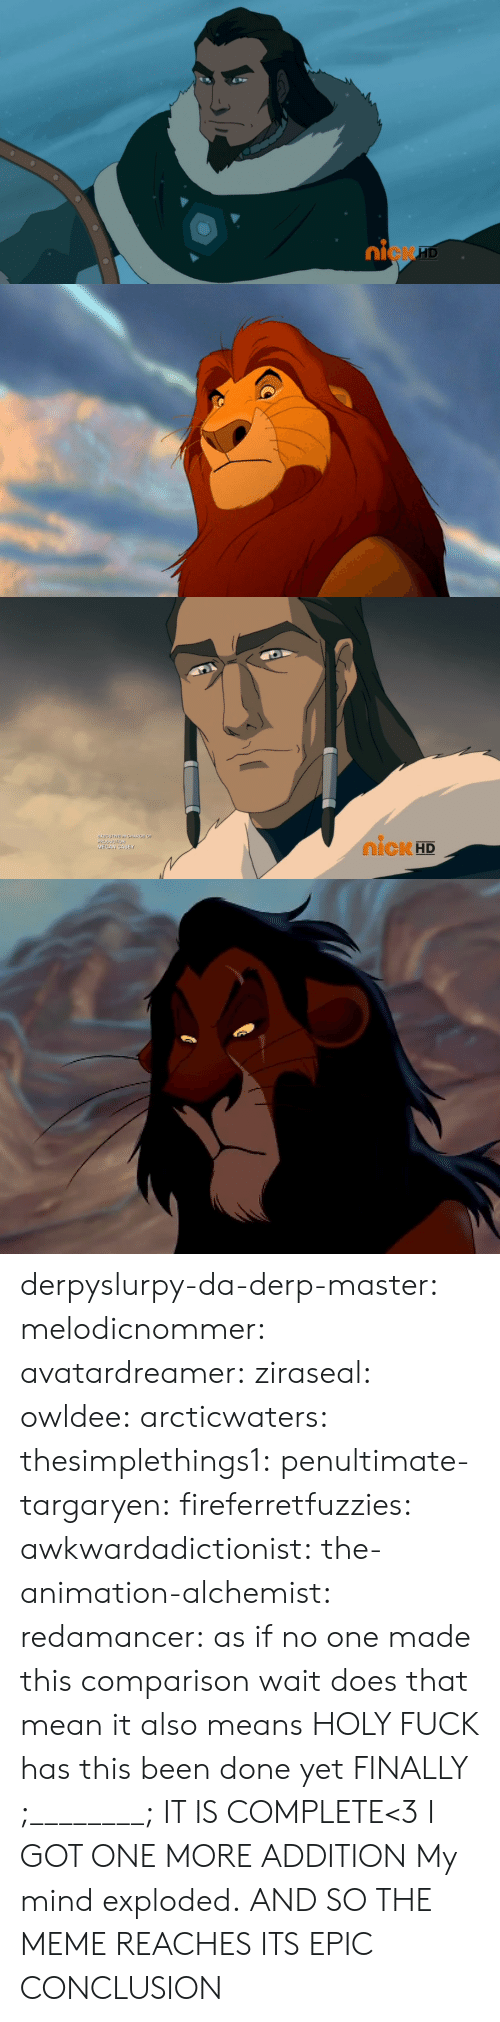 Disney, Gif, and Meme: 0  ni  cK   IcK HD  ME derpyslurpy-da-derp-master: melodicnommer:  avatardreamer:  ziraseal:  owldee:  arcticwaters:  thesimplethings1:  penultimate-targaryen:  fireferretfuzzies:  awkwardadictionist:  the-animation-alchemist:  redamancer:  as if no one made this comparison        wait does that mean    it also means   HOLY FUCK  has this been done yet    FINALLY ;________; IT IS COMPLETE<3  I GOT ONE MORE ADDITION   My mind exploded.   AND SO THE MEME REACHES ITS EPIC CONCLUSION